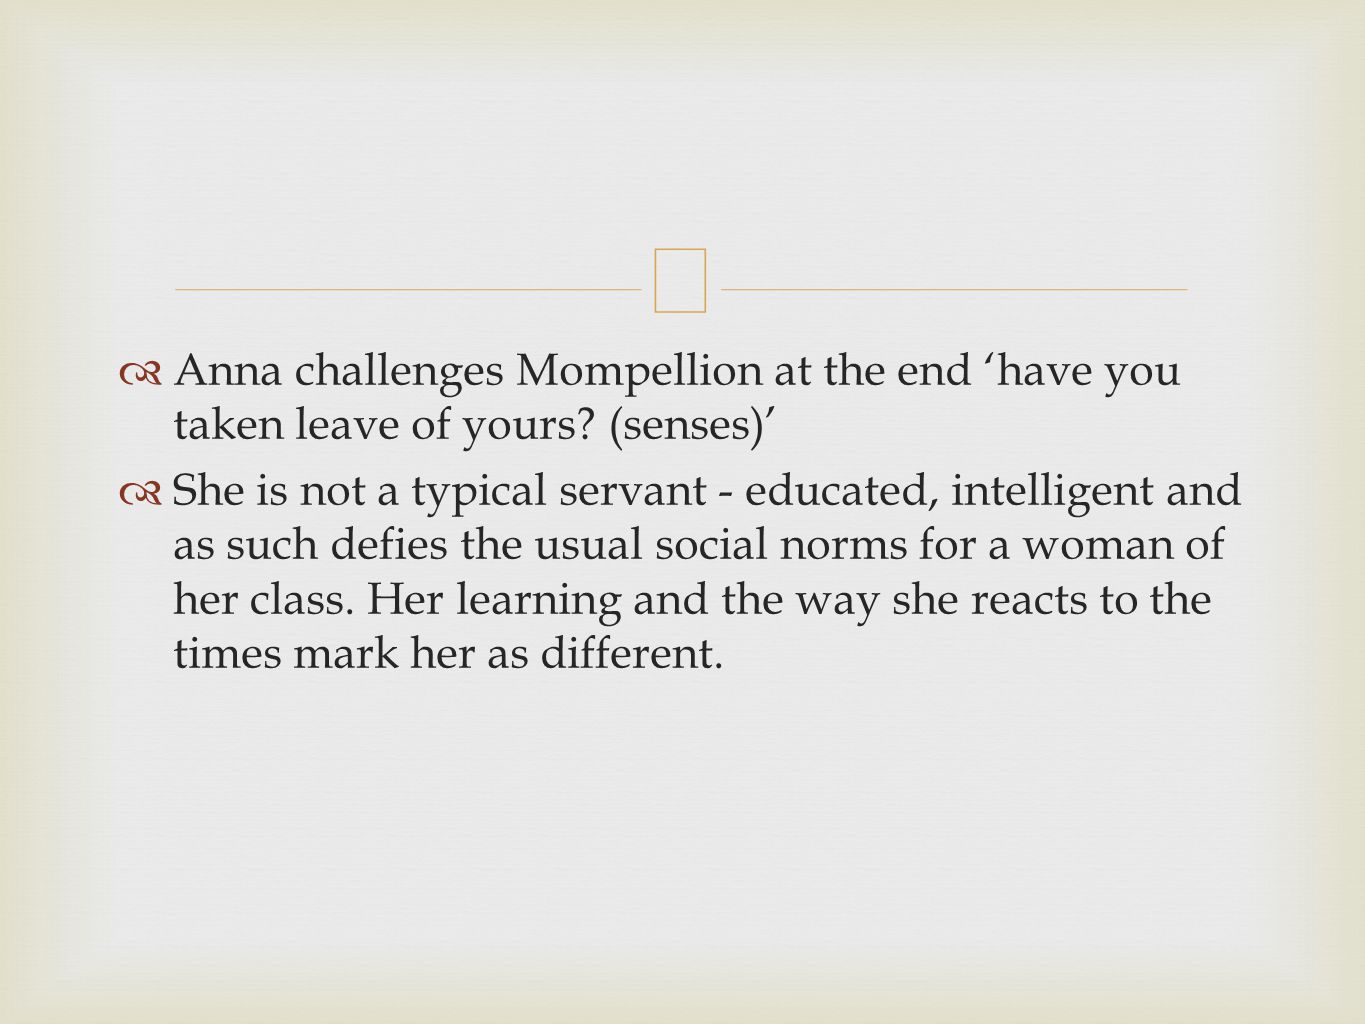 Anna challenges Mompellion at the end have you taken leave of yours.